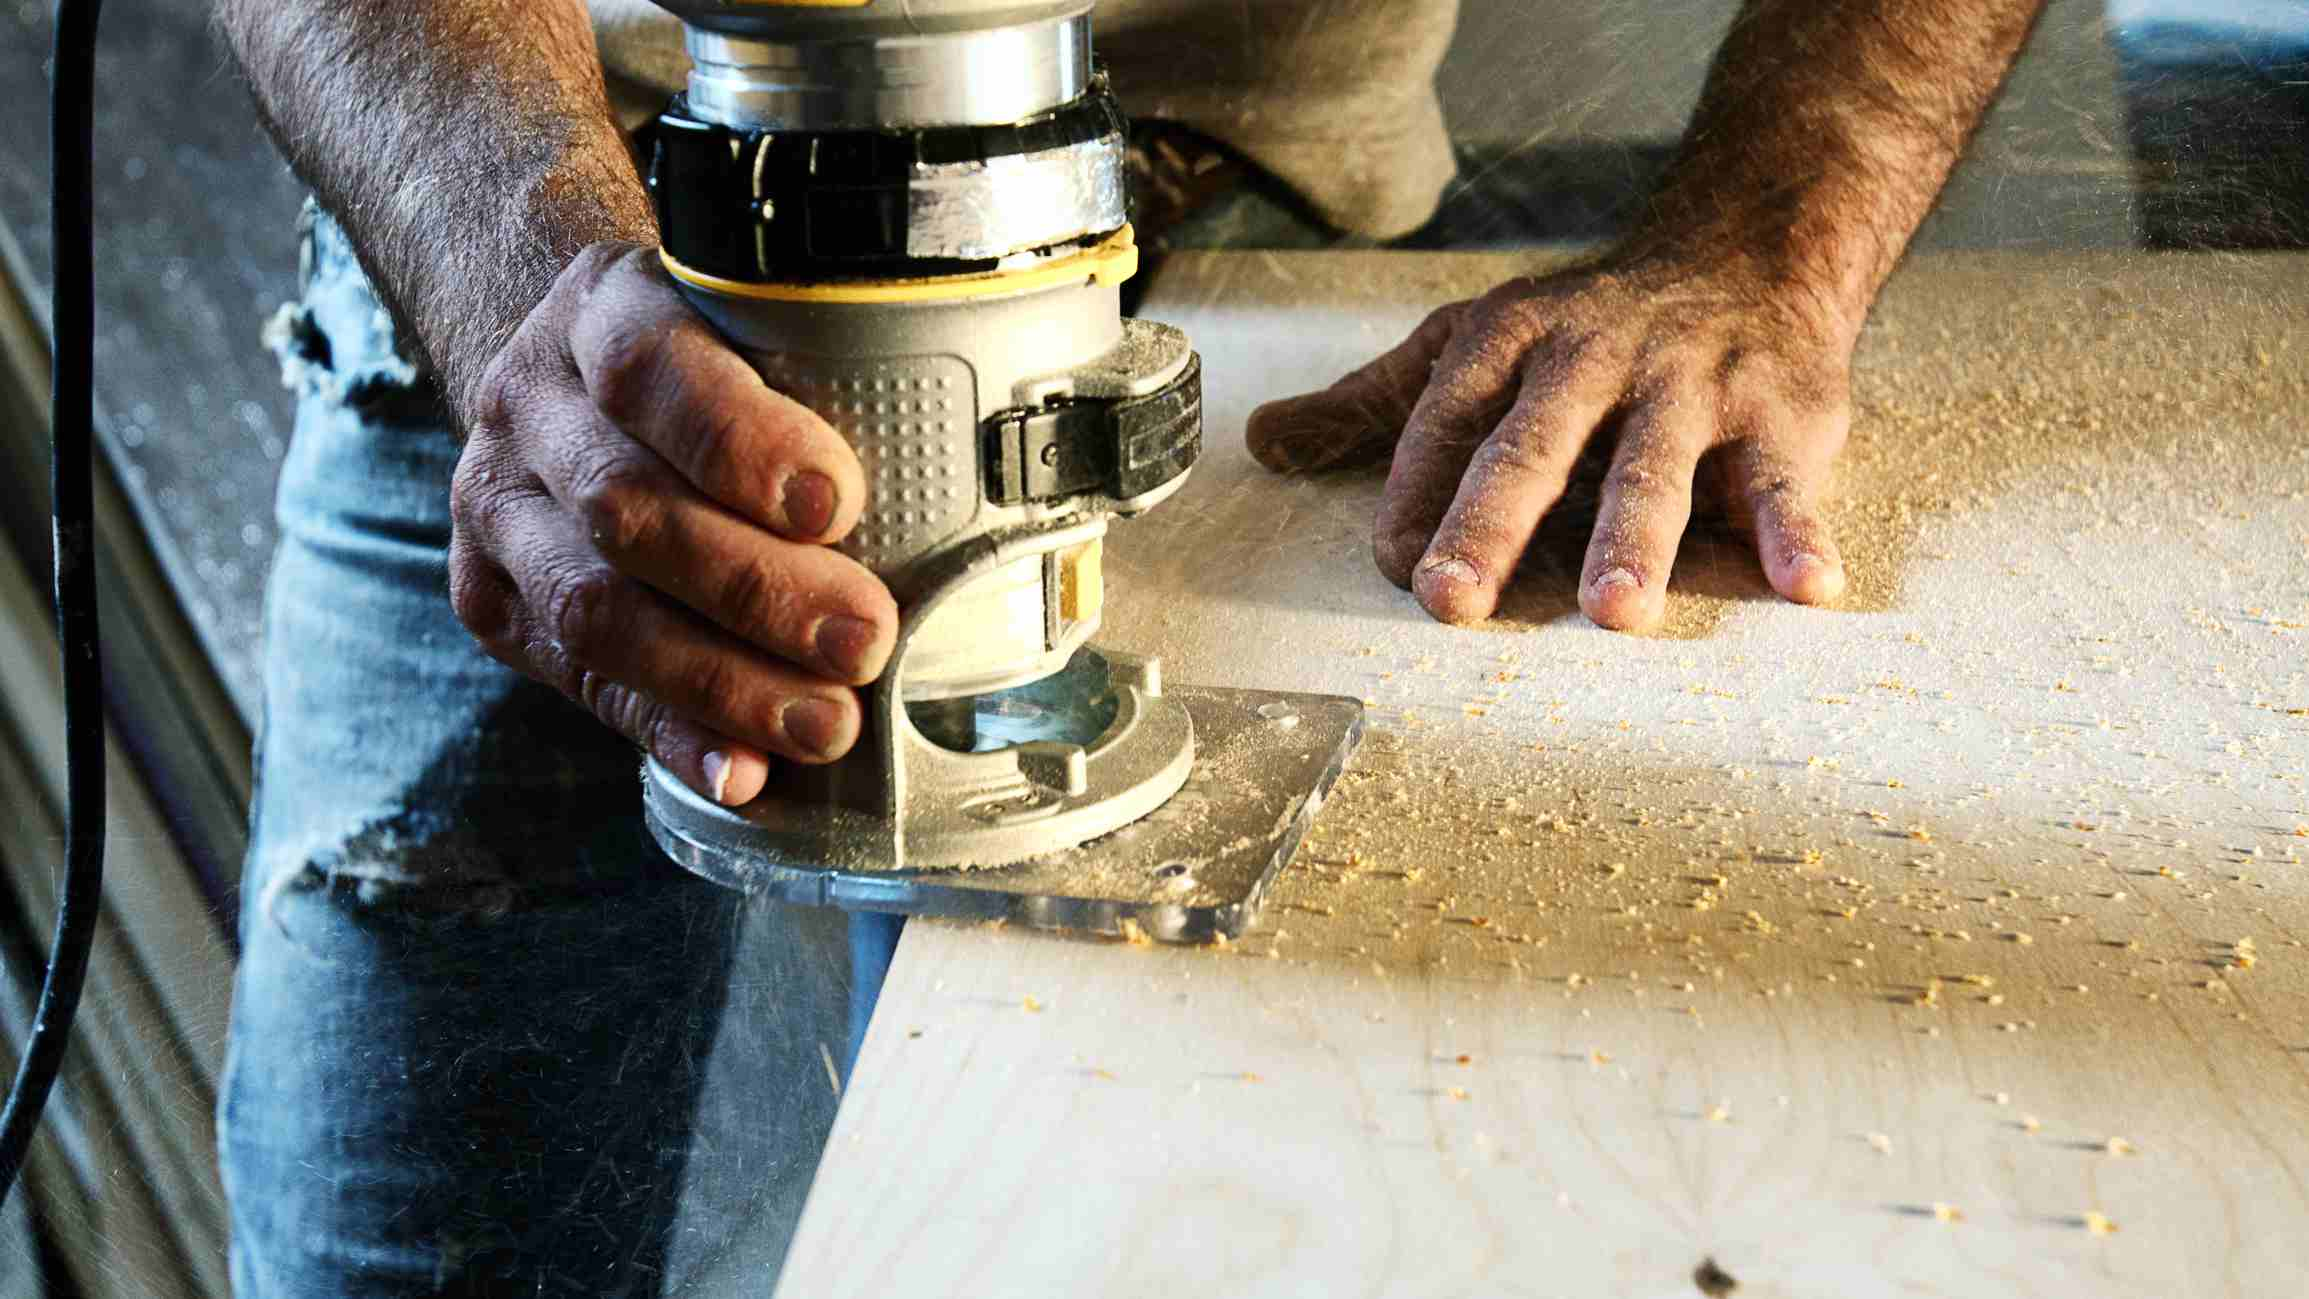 Carpenter using a wood router